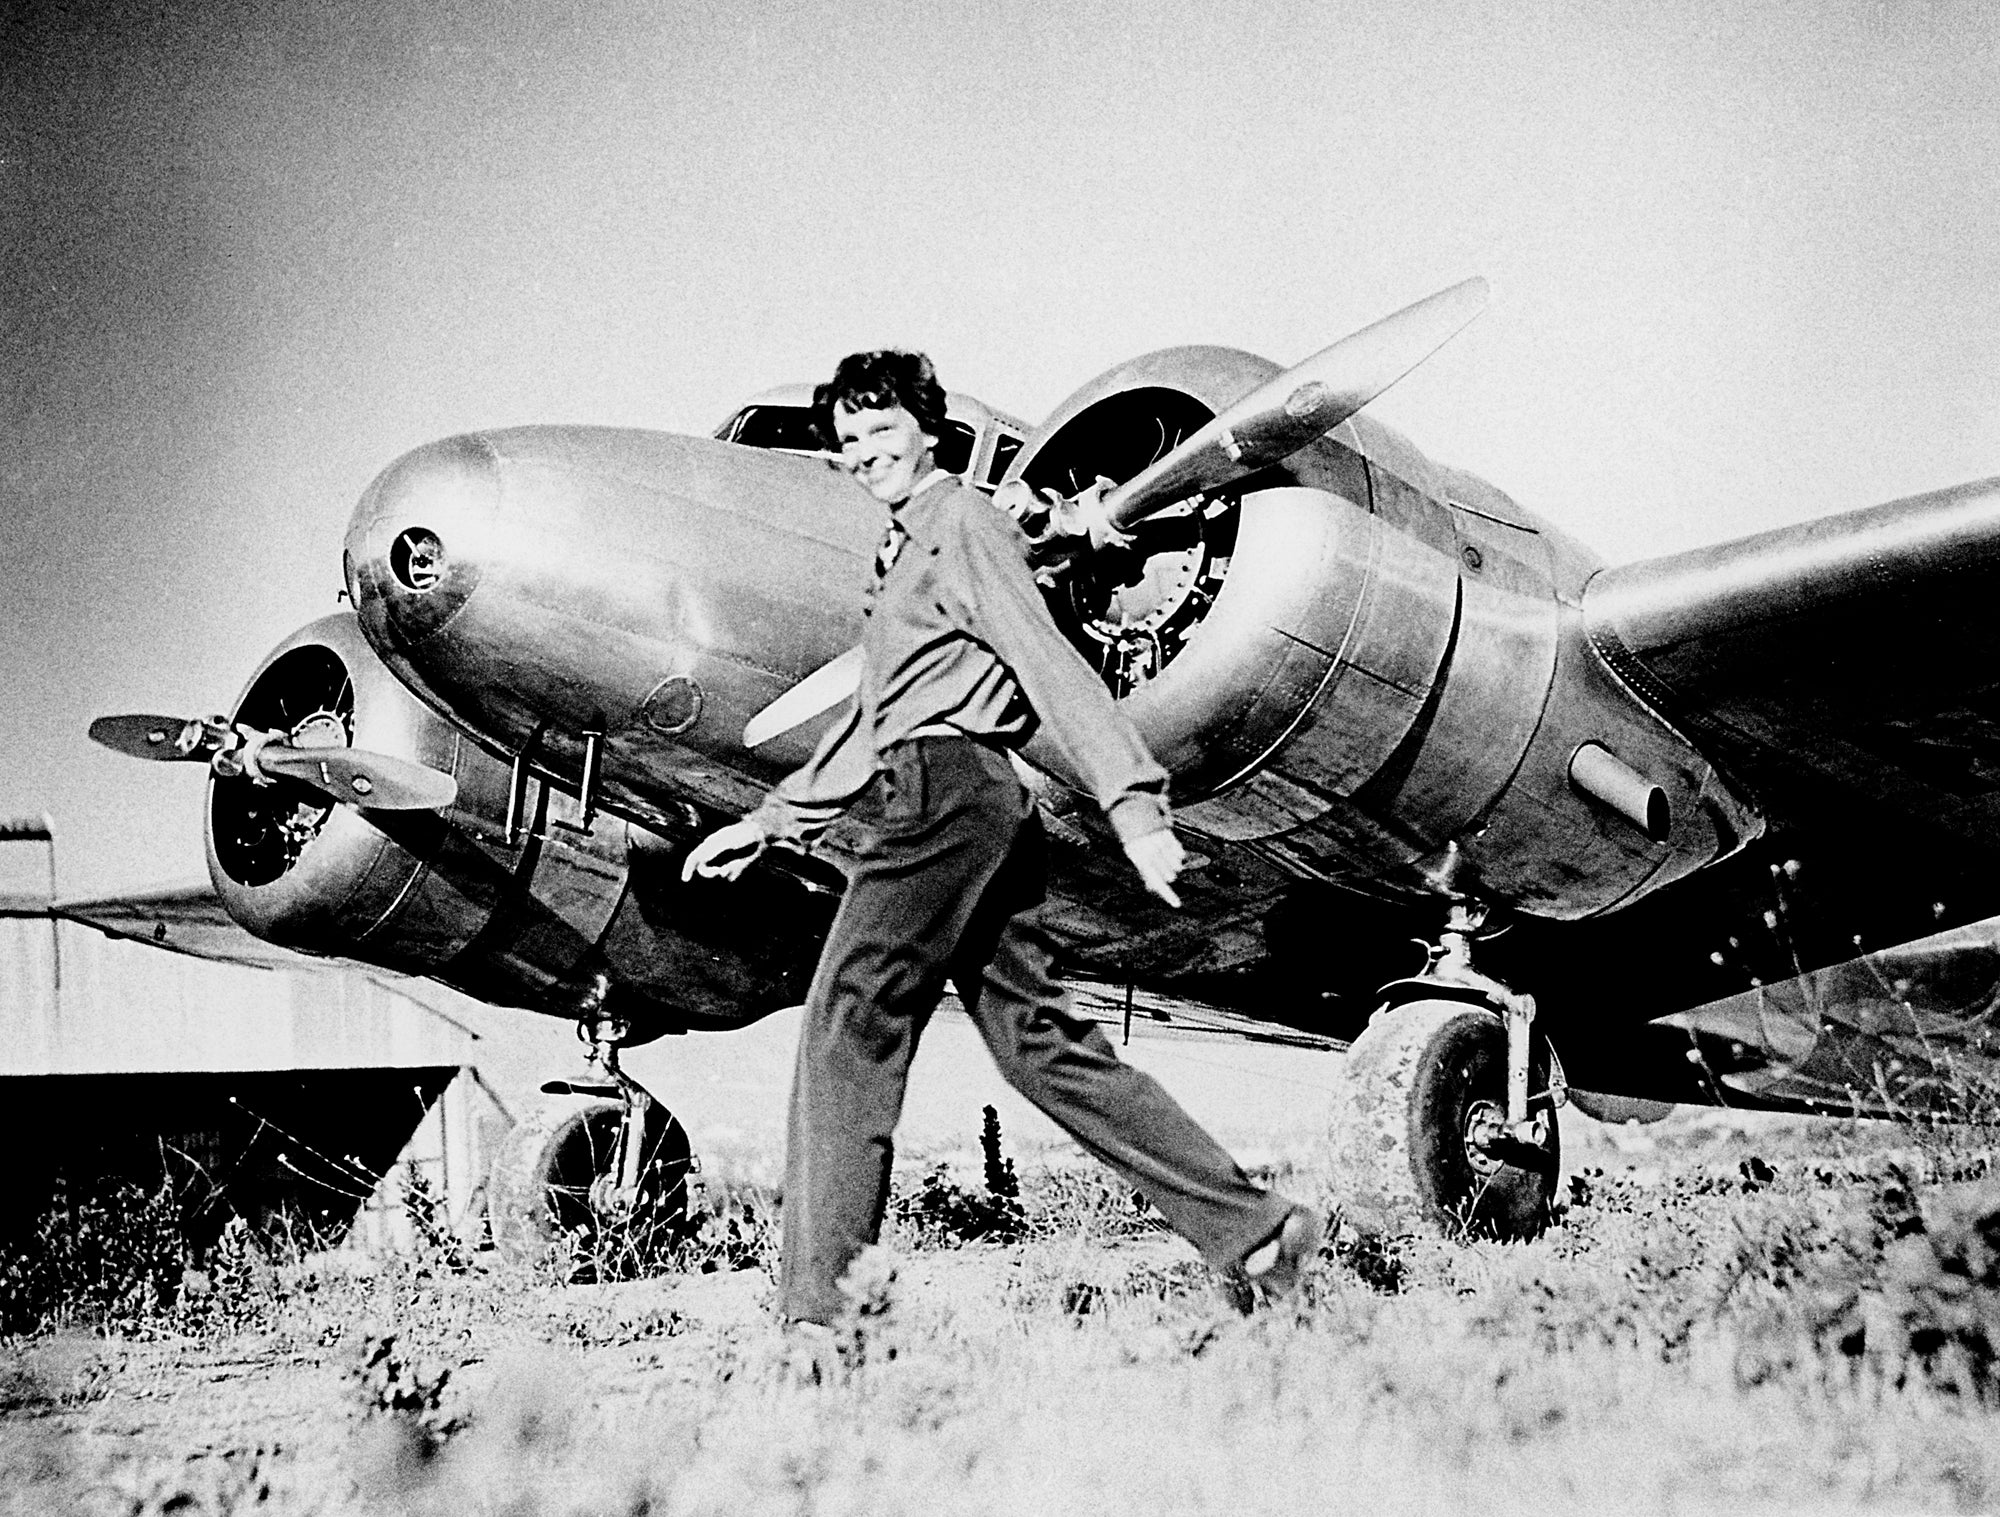 One of the first women aviators, Amelia Earhart broke many records as the first woman to cross the Atlantic alone